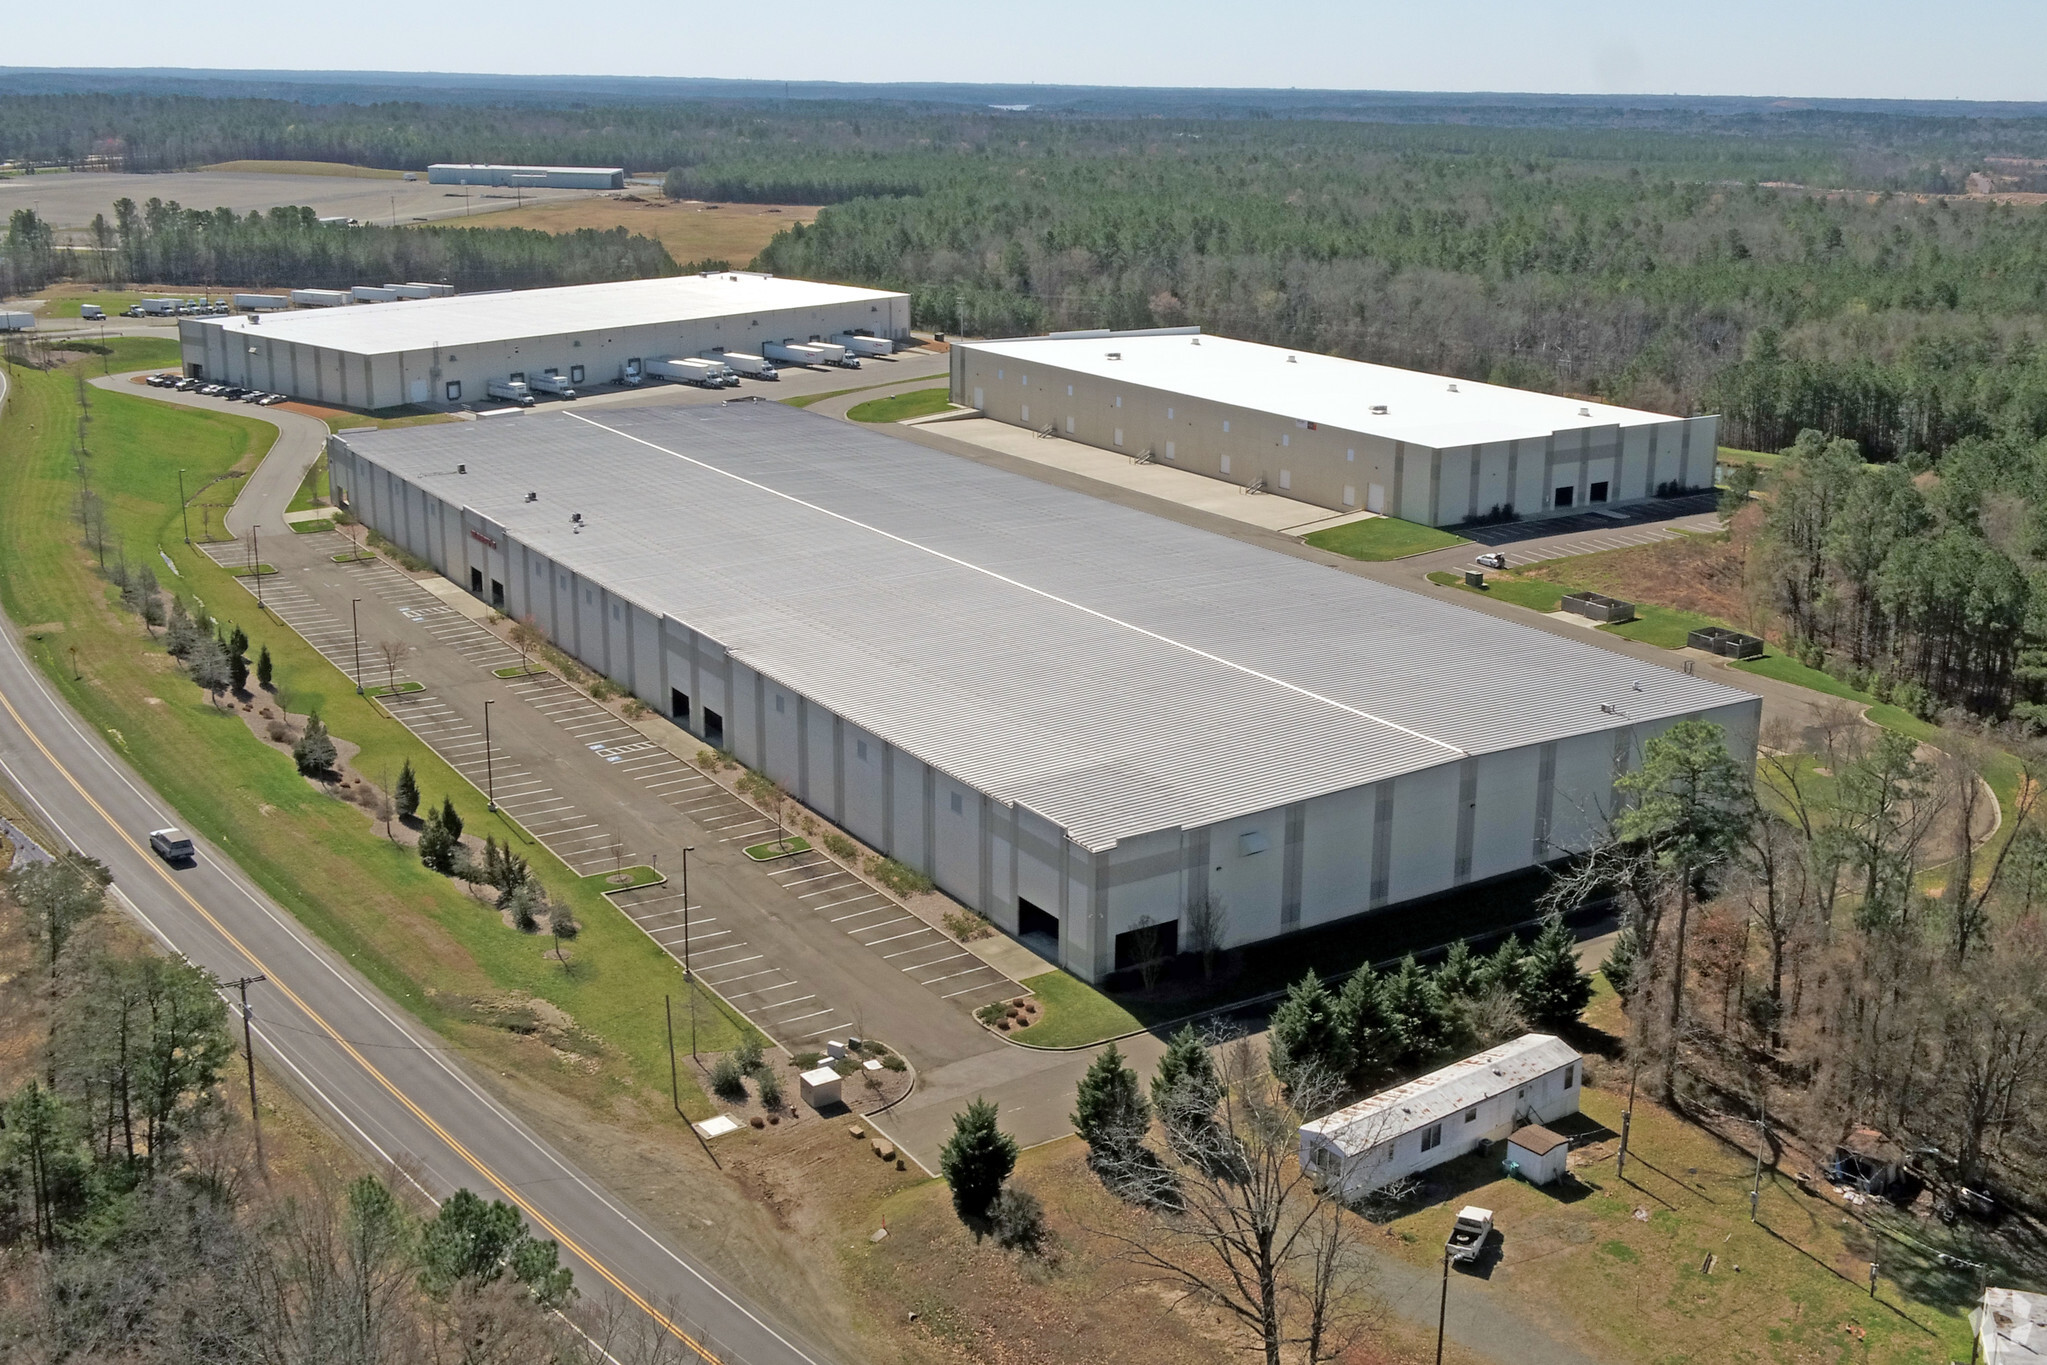 Configurable Play Couch Maker Inks Lease in Butner